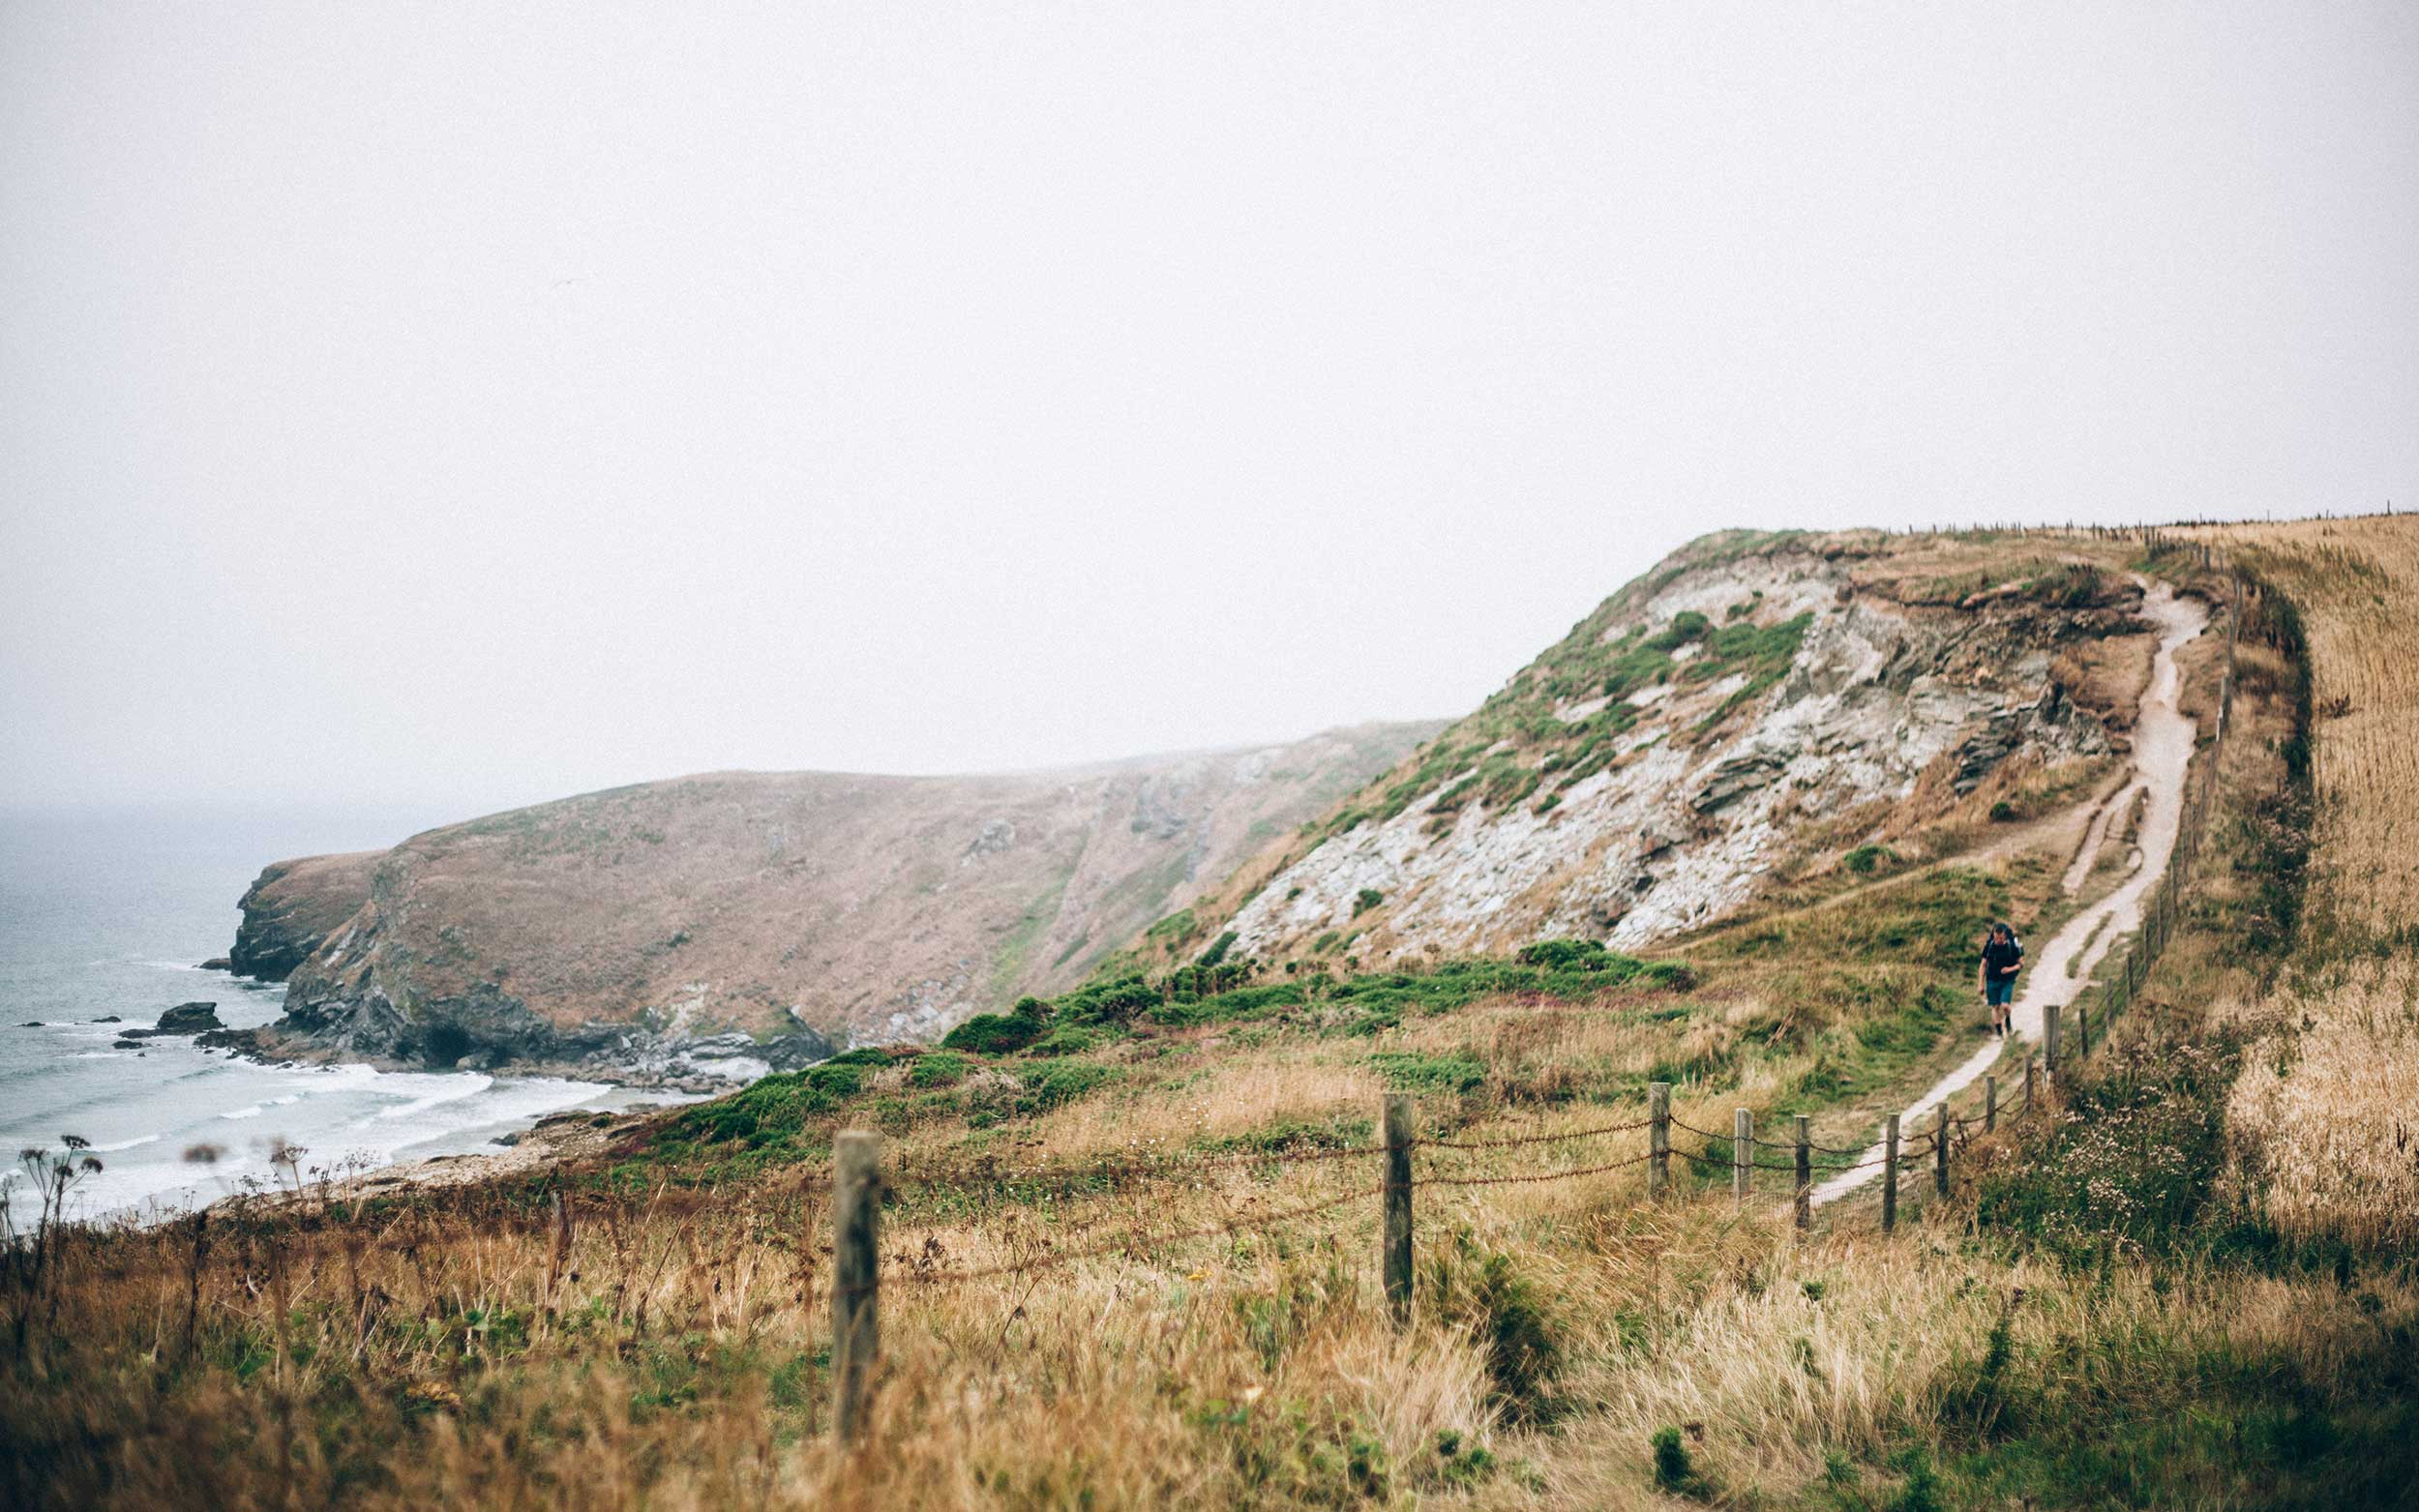 Solo+Camping+in+Cornwall+_+With+Heimplanet+_+Karl+Mackie+Photography (8).jpeg